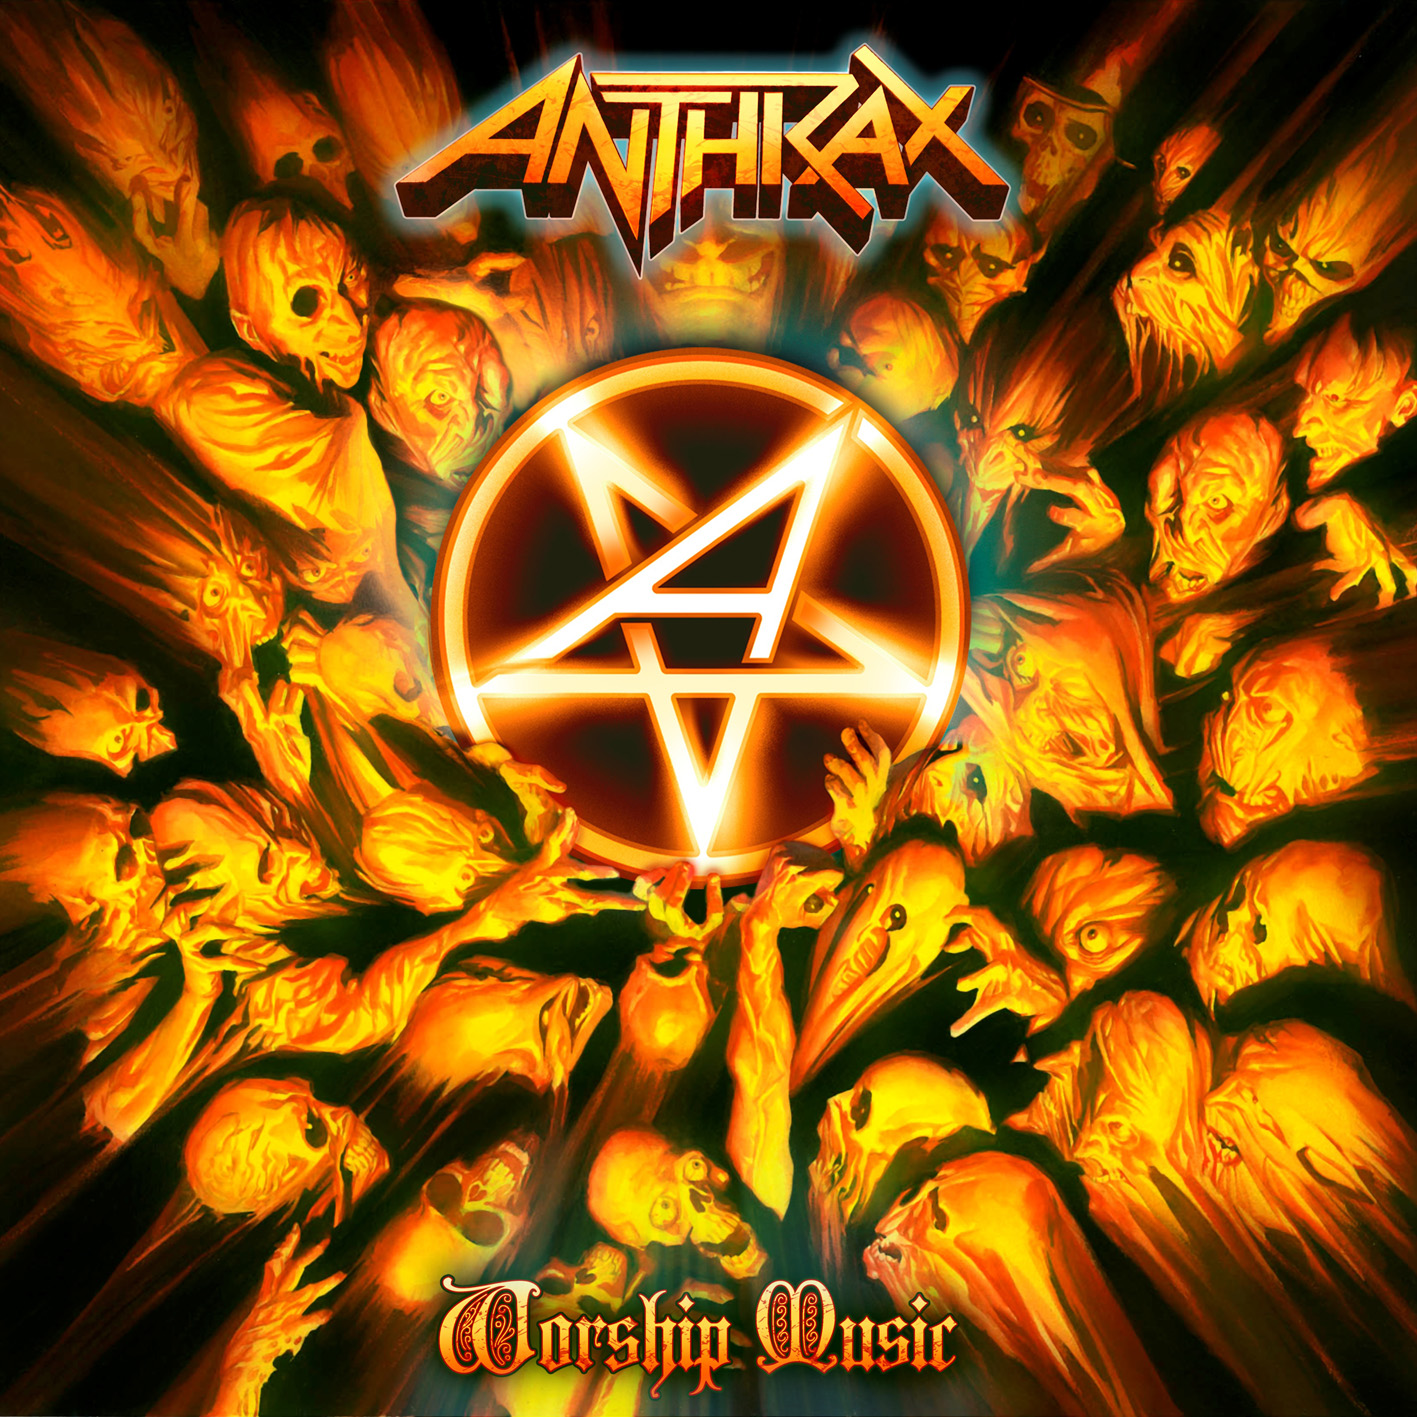 Anthrax Worship Music artwork